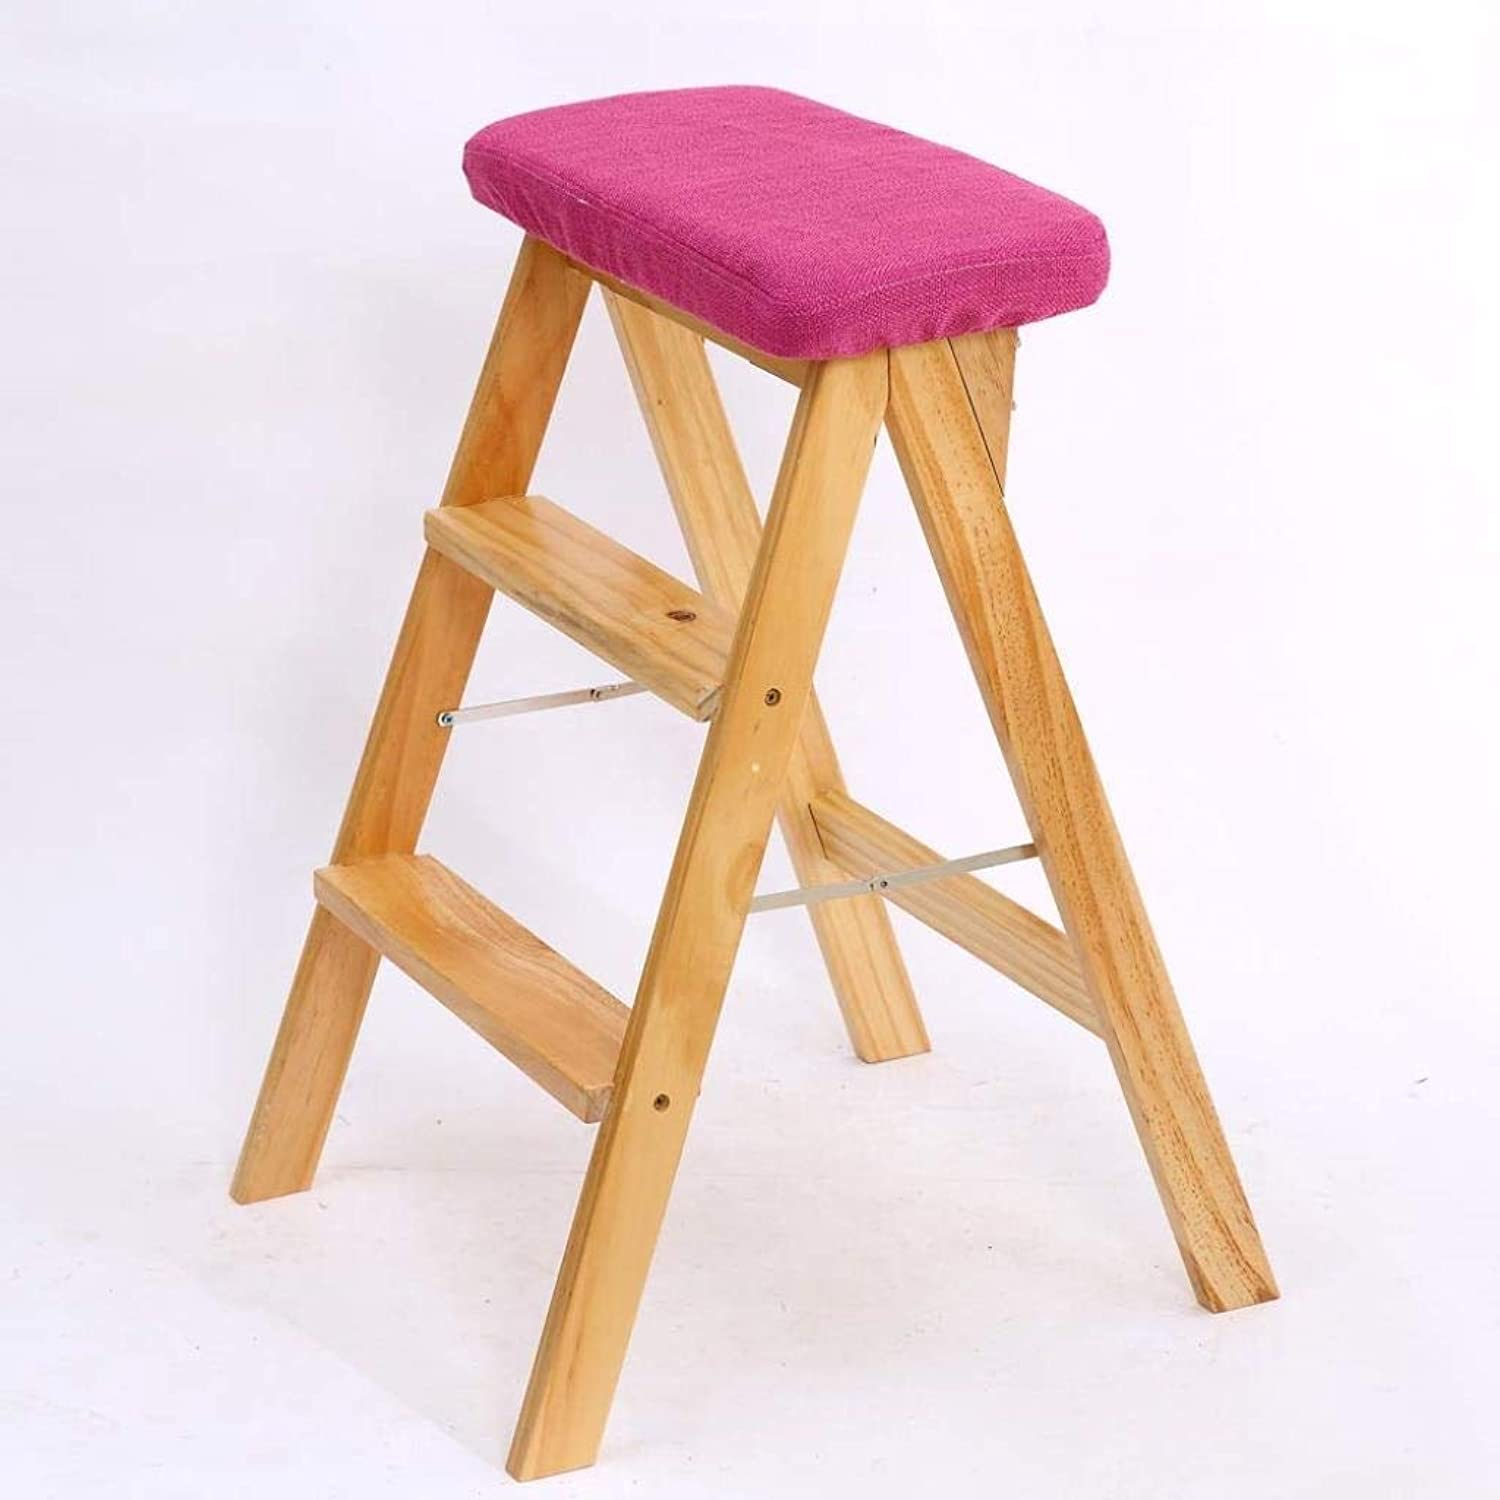 Step Stool Folding- Solid Wood Creative Folding Stool Simple Folding Step Stool Kitchen Stool Portable Stool Folding Household Bench High Stool 42x49x63cm ZXMDMZ (color   W)